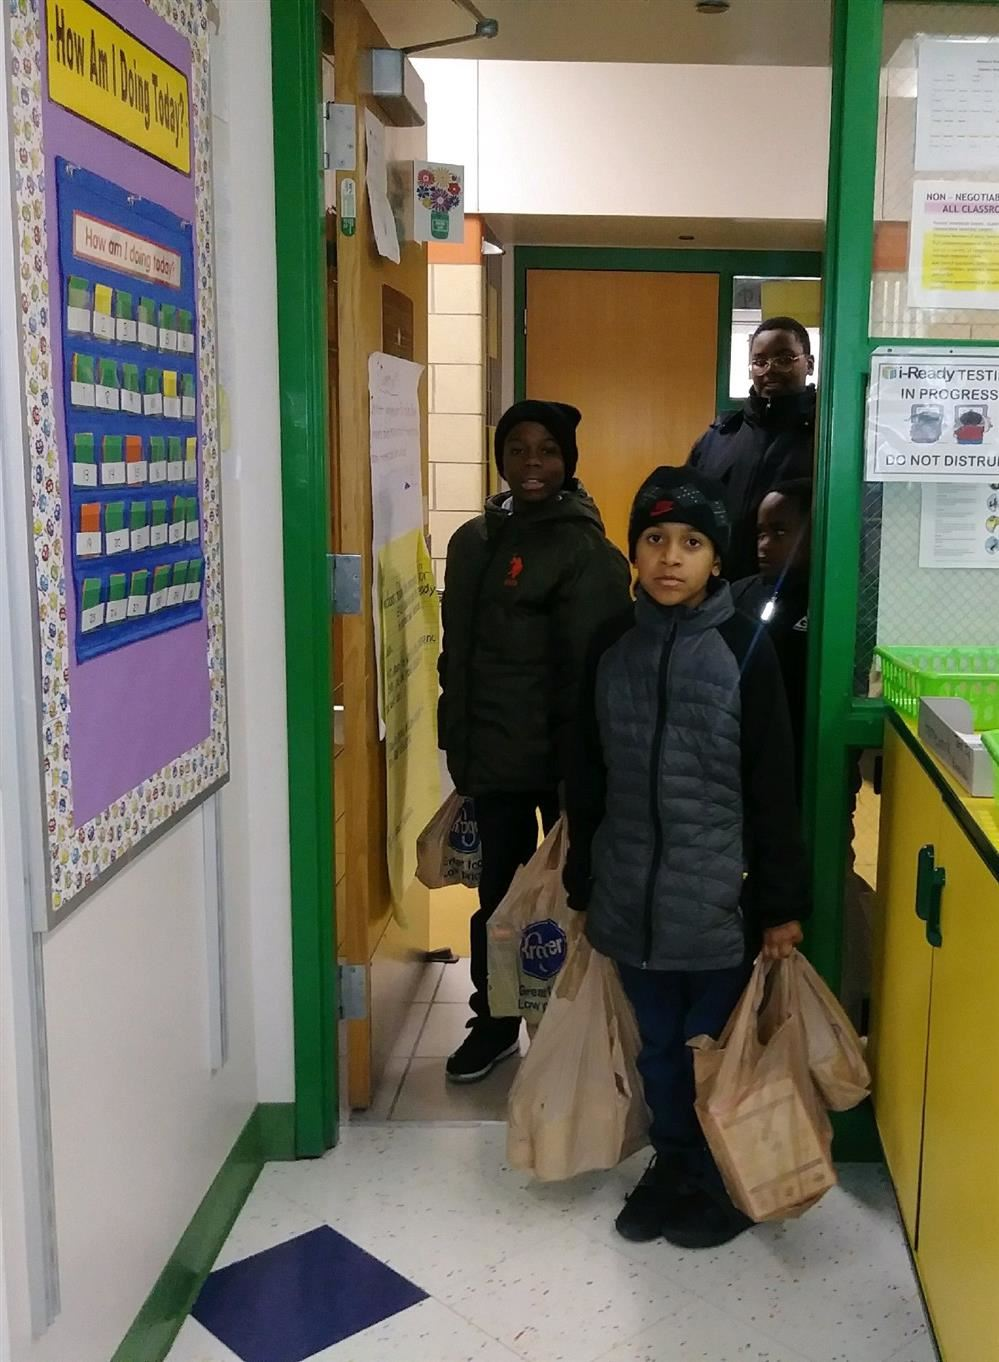 Students standing in doorway carrying food donations in bags.